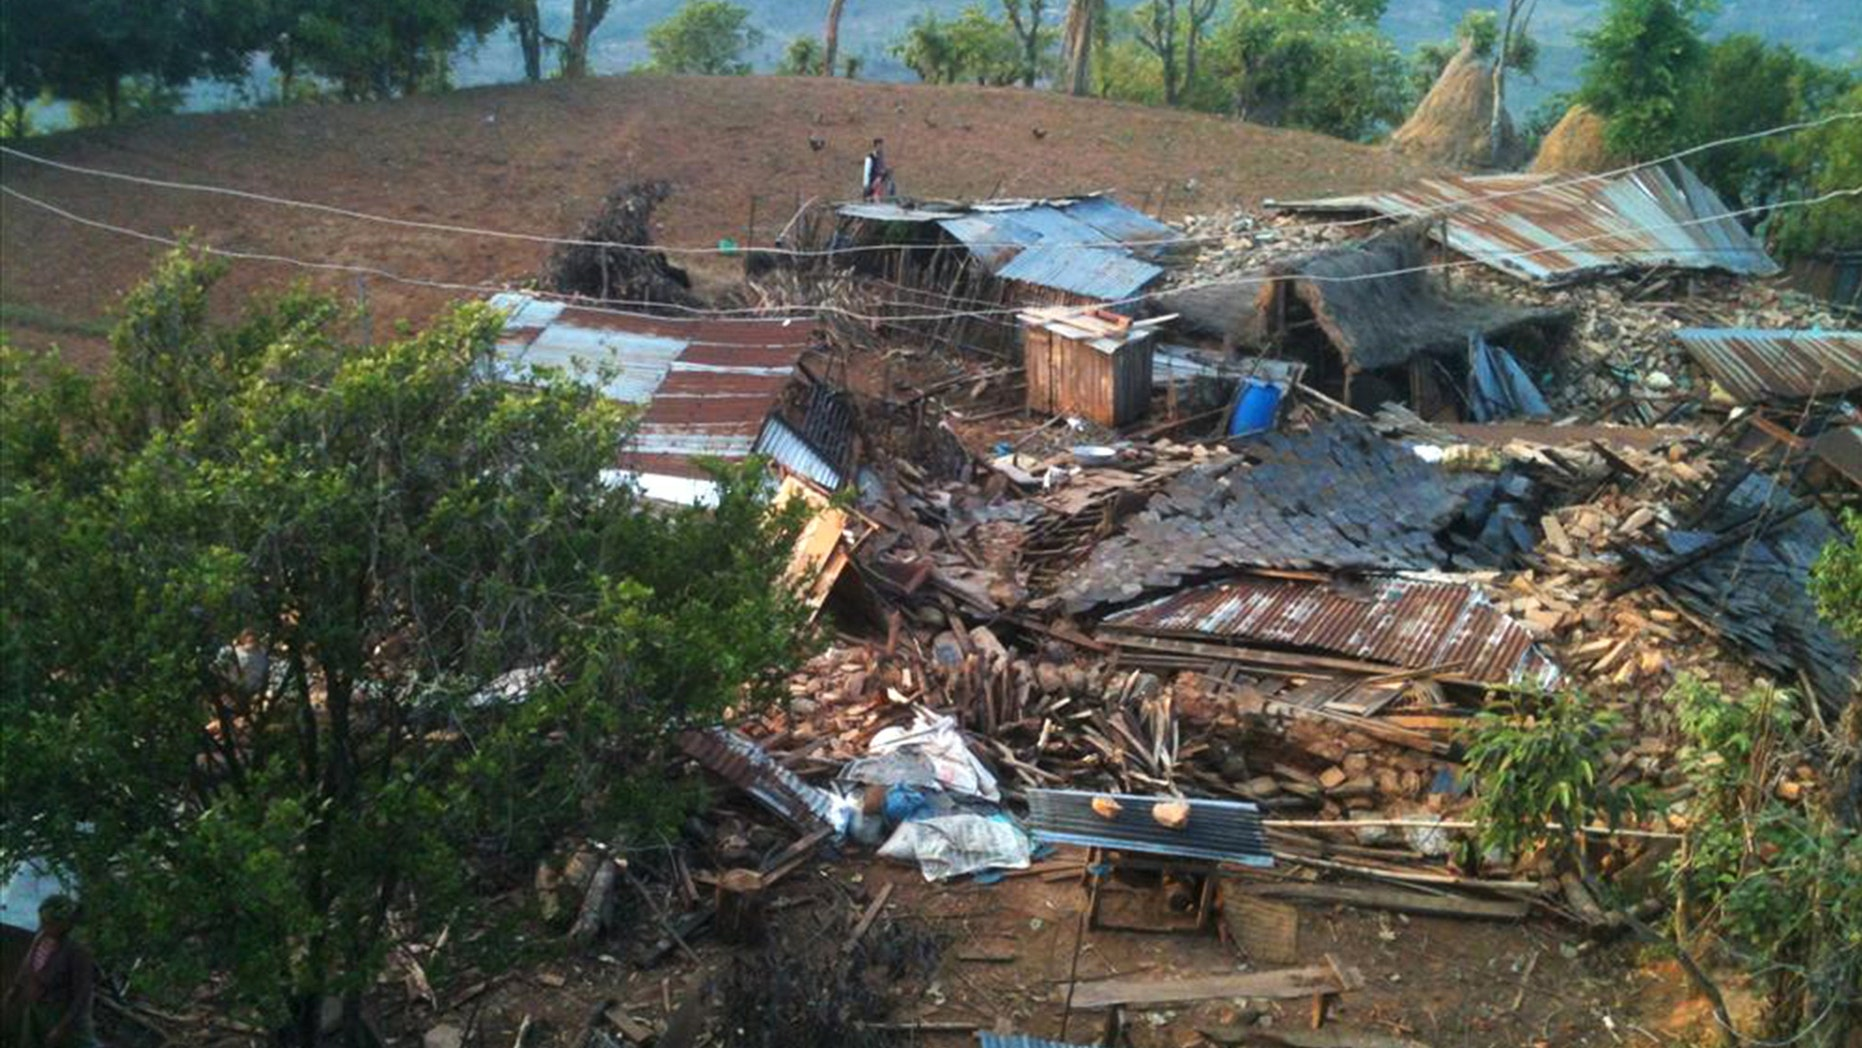 In this photo provided by World Vision, houses lie destroyed by Saturdayâs earthquake at Paslang village in Gorkha municipality, Nepal, Monday, April 27, 2015. Reports received so far by the government and aid groups suggest that many communities perched on mountainsides are devastated or struggling to cope. Udav Prashad Timalsina, the top official for the Gorkha district, near the epicenter of Saturday's quake, said he was in desperate need of help. (Bishwo Ghimire/World Vision via AP)